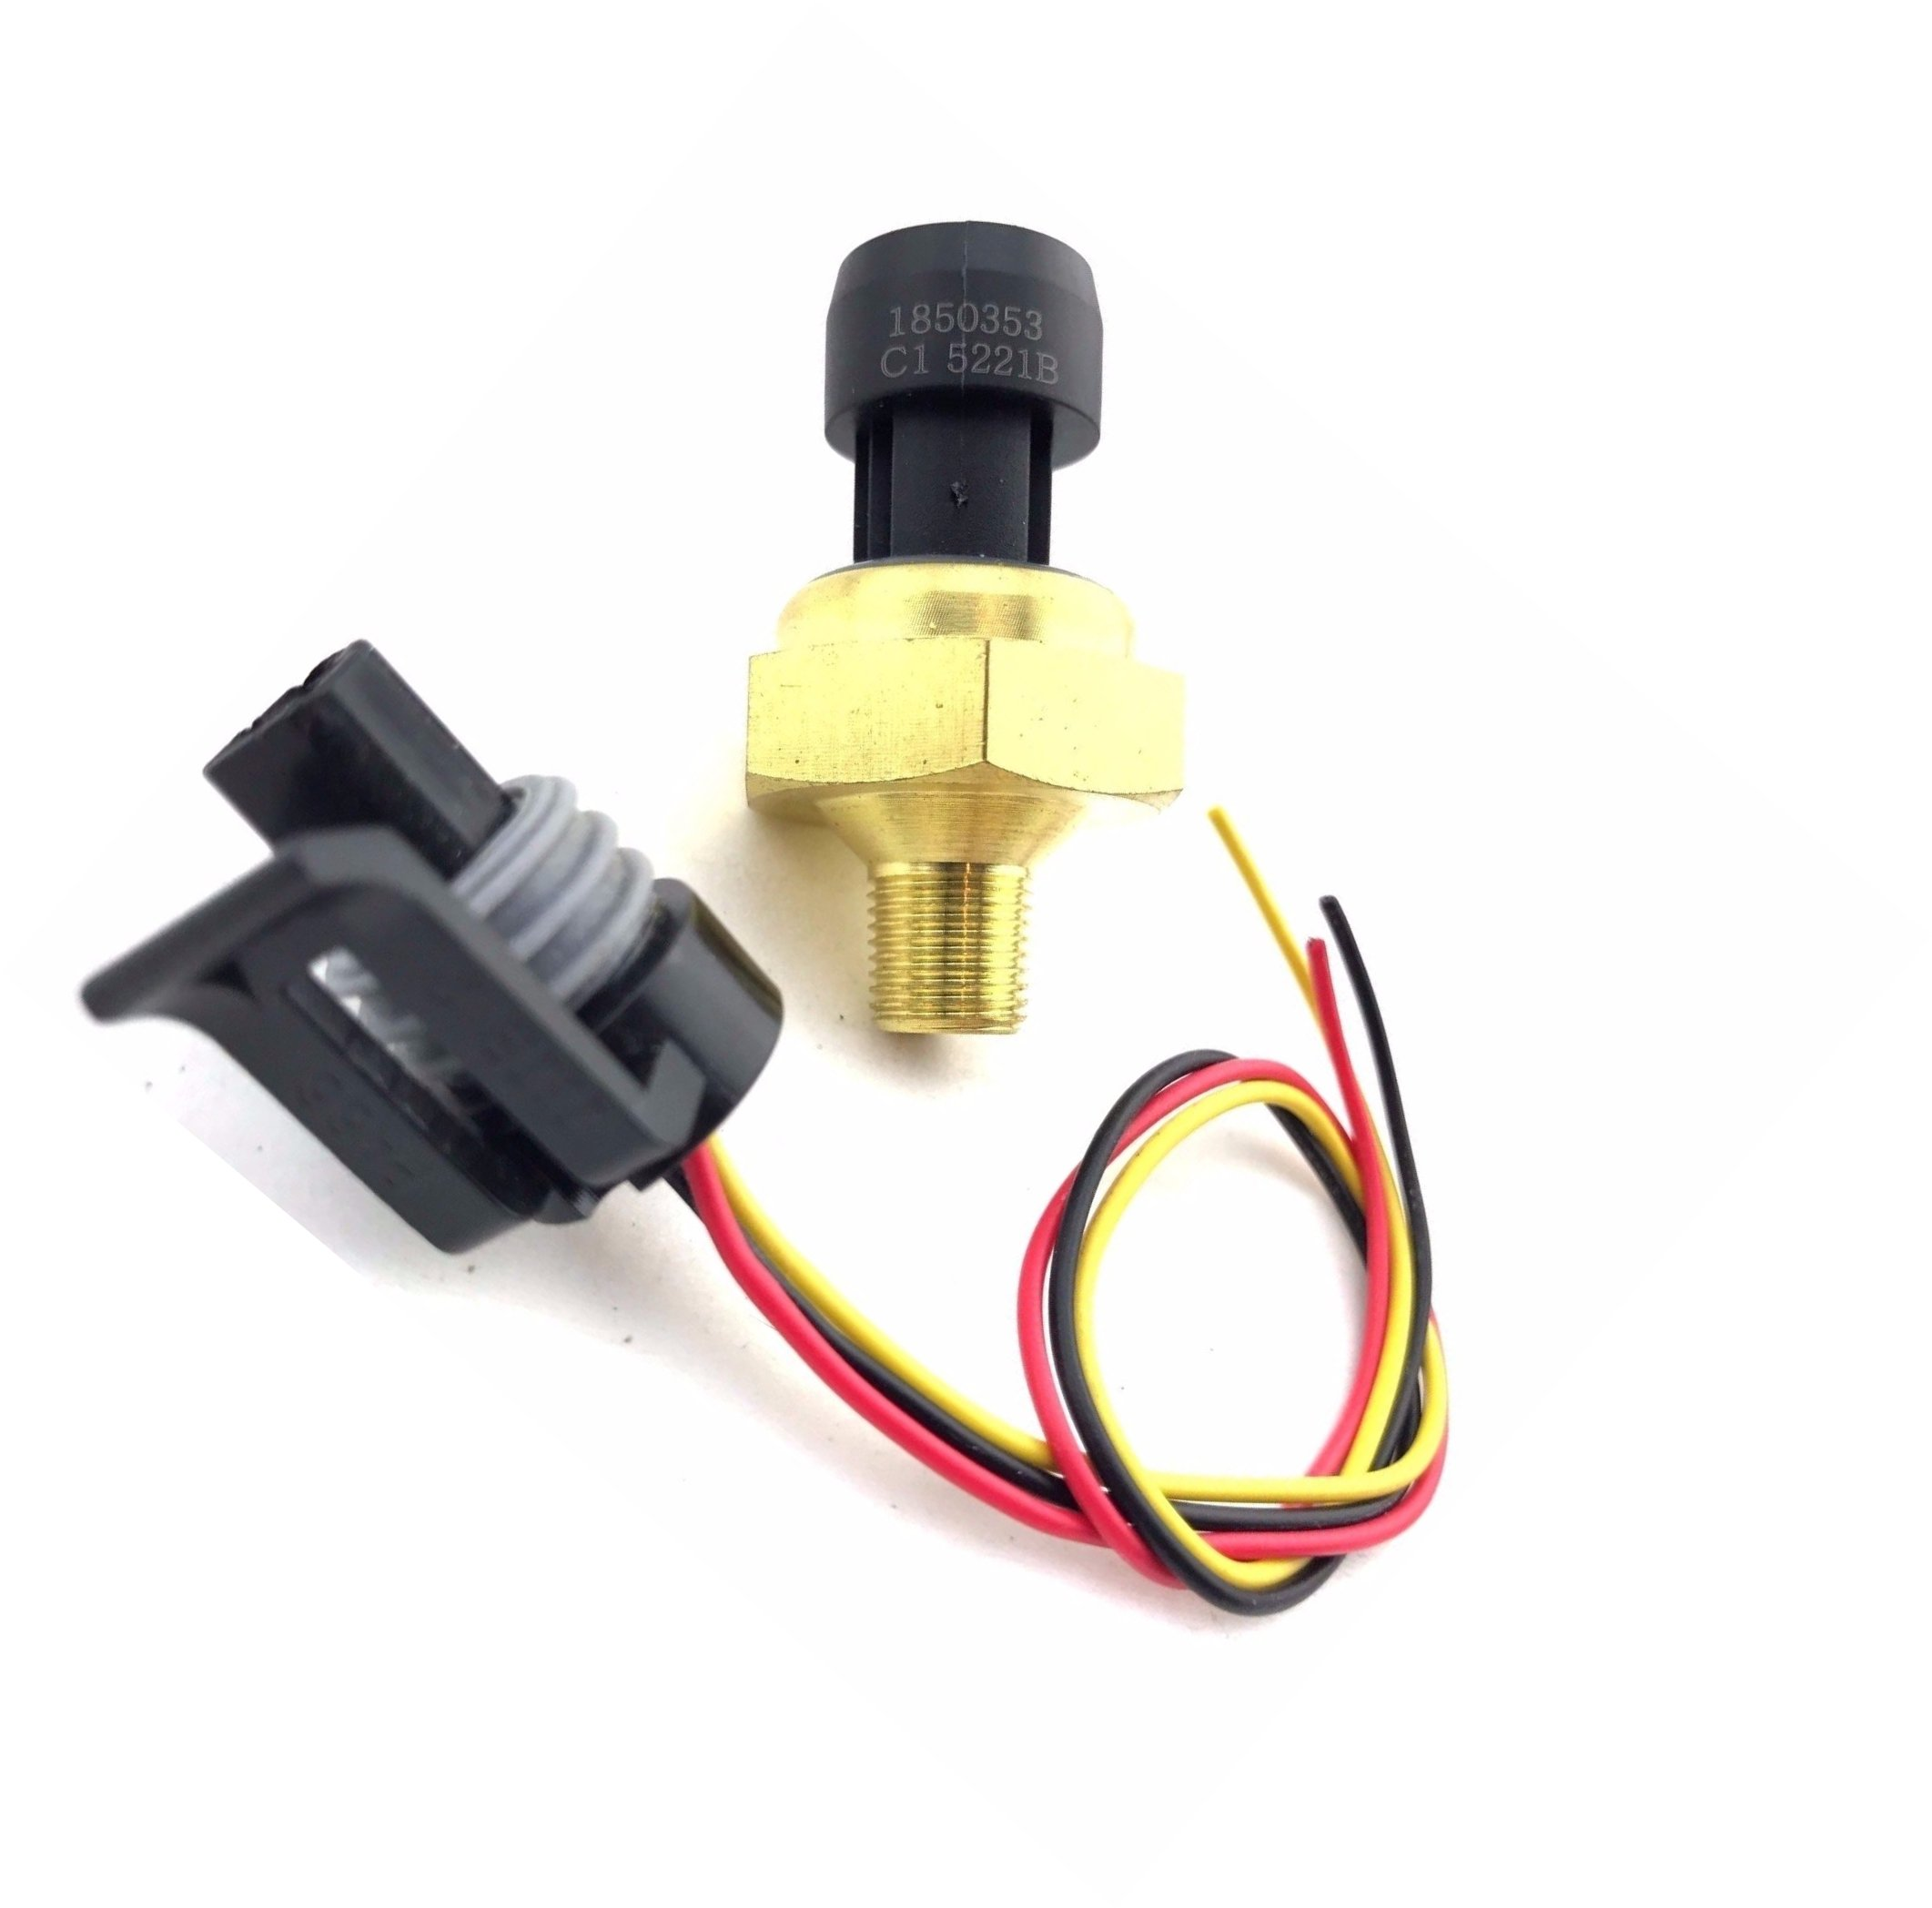 EBP EGR Exhaust Back Pressure Sensor fits Ford Powerstroke 7.3L 6.0L 1997-2003 Replaces 1850353C1 4C3Z-9J460-A DPFE-3 Coil Glow Plug Pigtail Included Top Quality Brand New